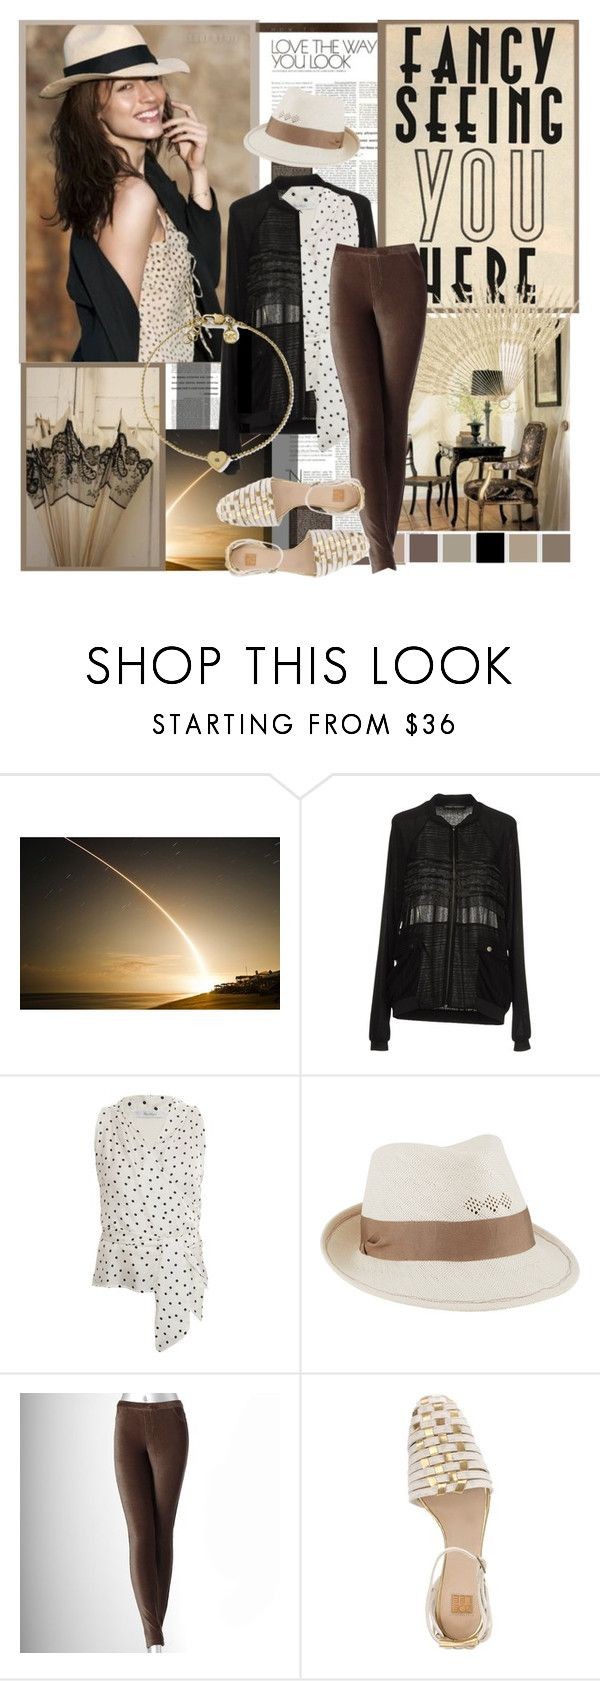 """""""♡♡♡"""" by lavendergal ❤ liked on Polyvore featuring Fulton, Anthony Vaccarello, MaxMara, Lola, Simply Vera, Zoe Lee and Michael Kors"""